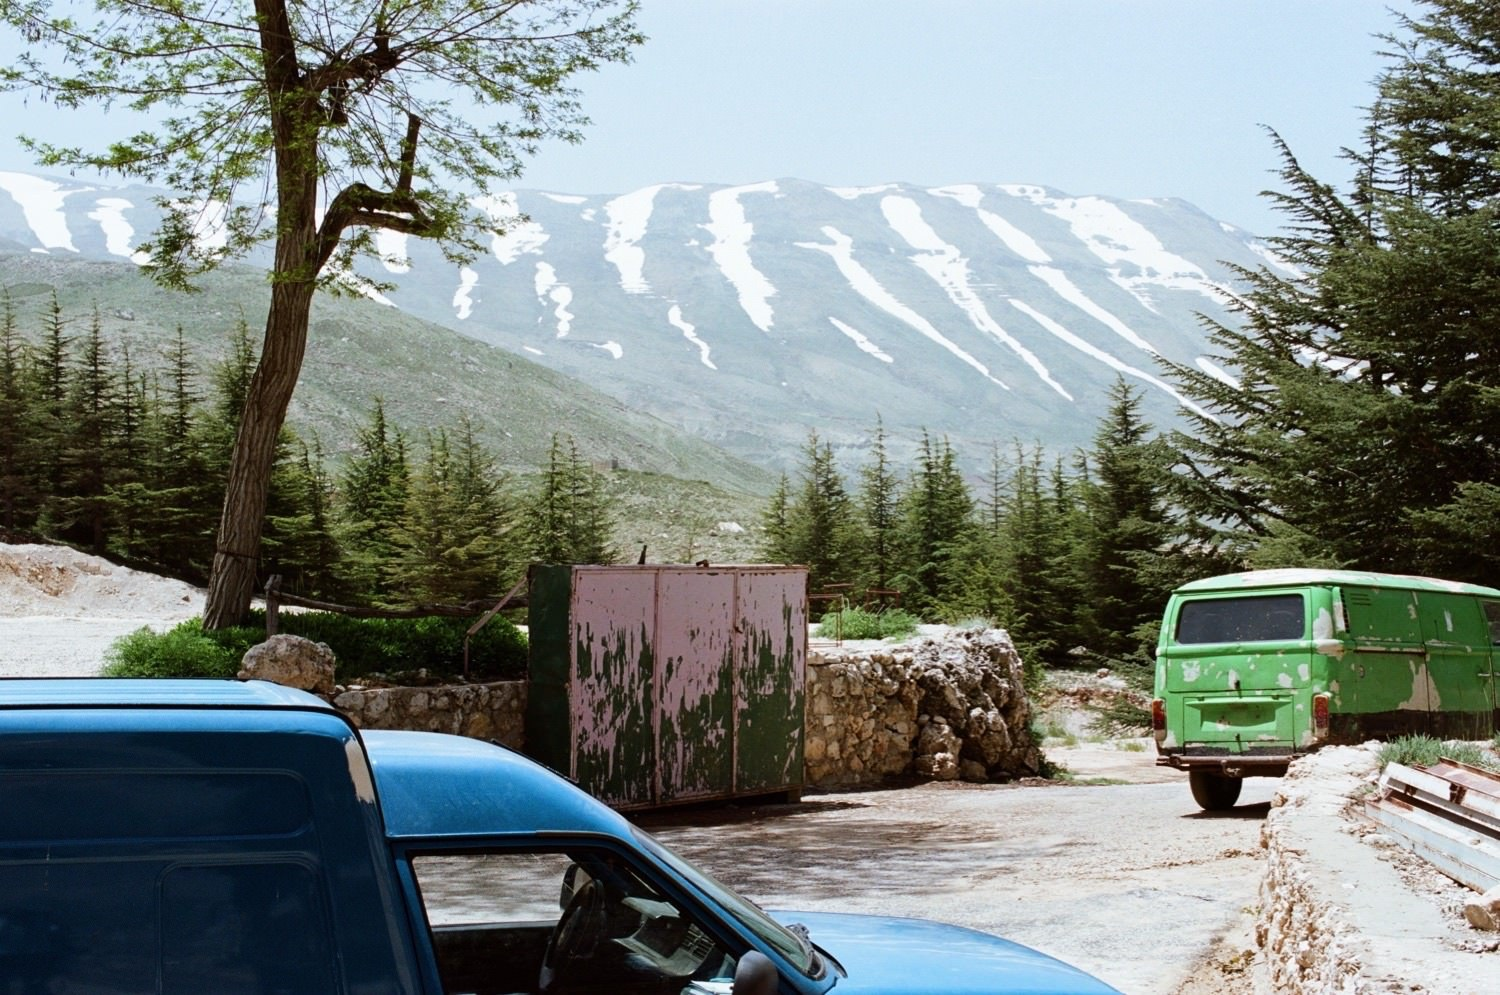 The Forest of the Cedars of God, May 2016 Archival pigment print with accompanying textDate: 2016/2018Size: 19 1/8 x 32 ½ inches (framed)Edition: 4 of 5